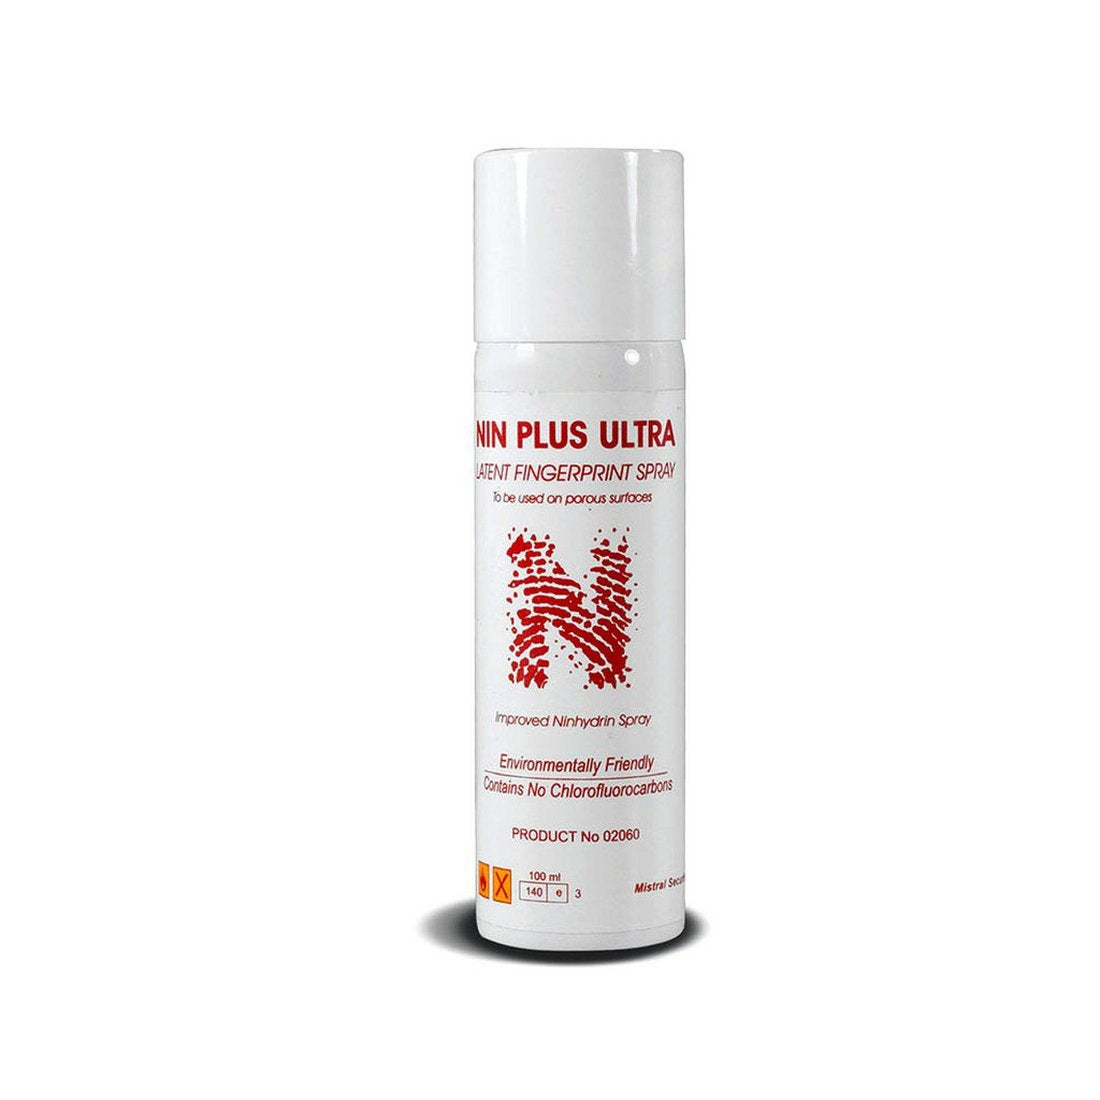 Mistral 02066 Nin Plus Ultra (200 cc) Fingerprints Detection Forensic Aerosol